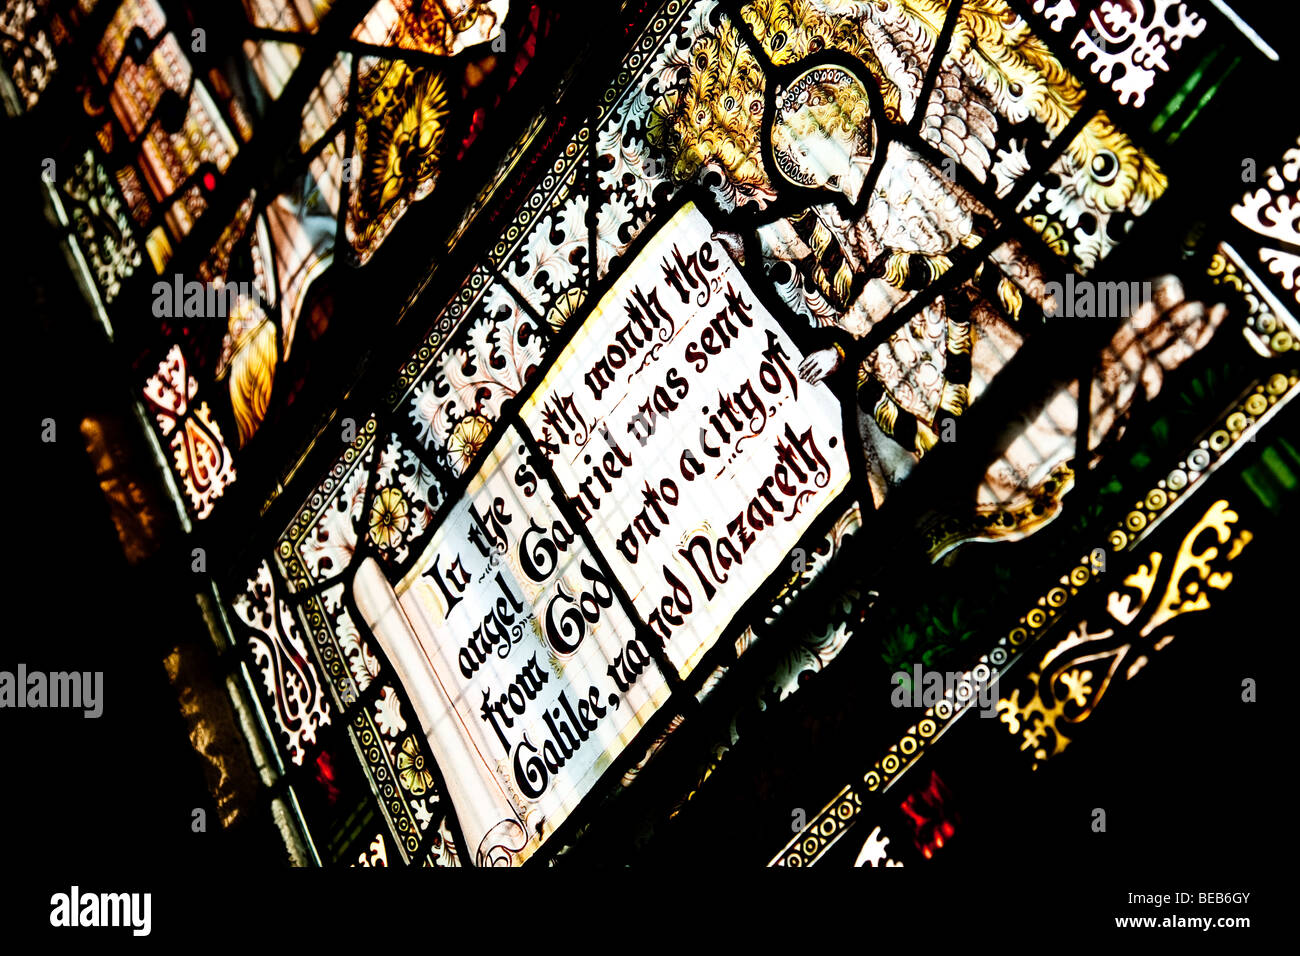 Stain Glass windows in a medival church - Stock Image